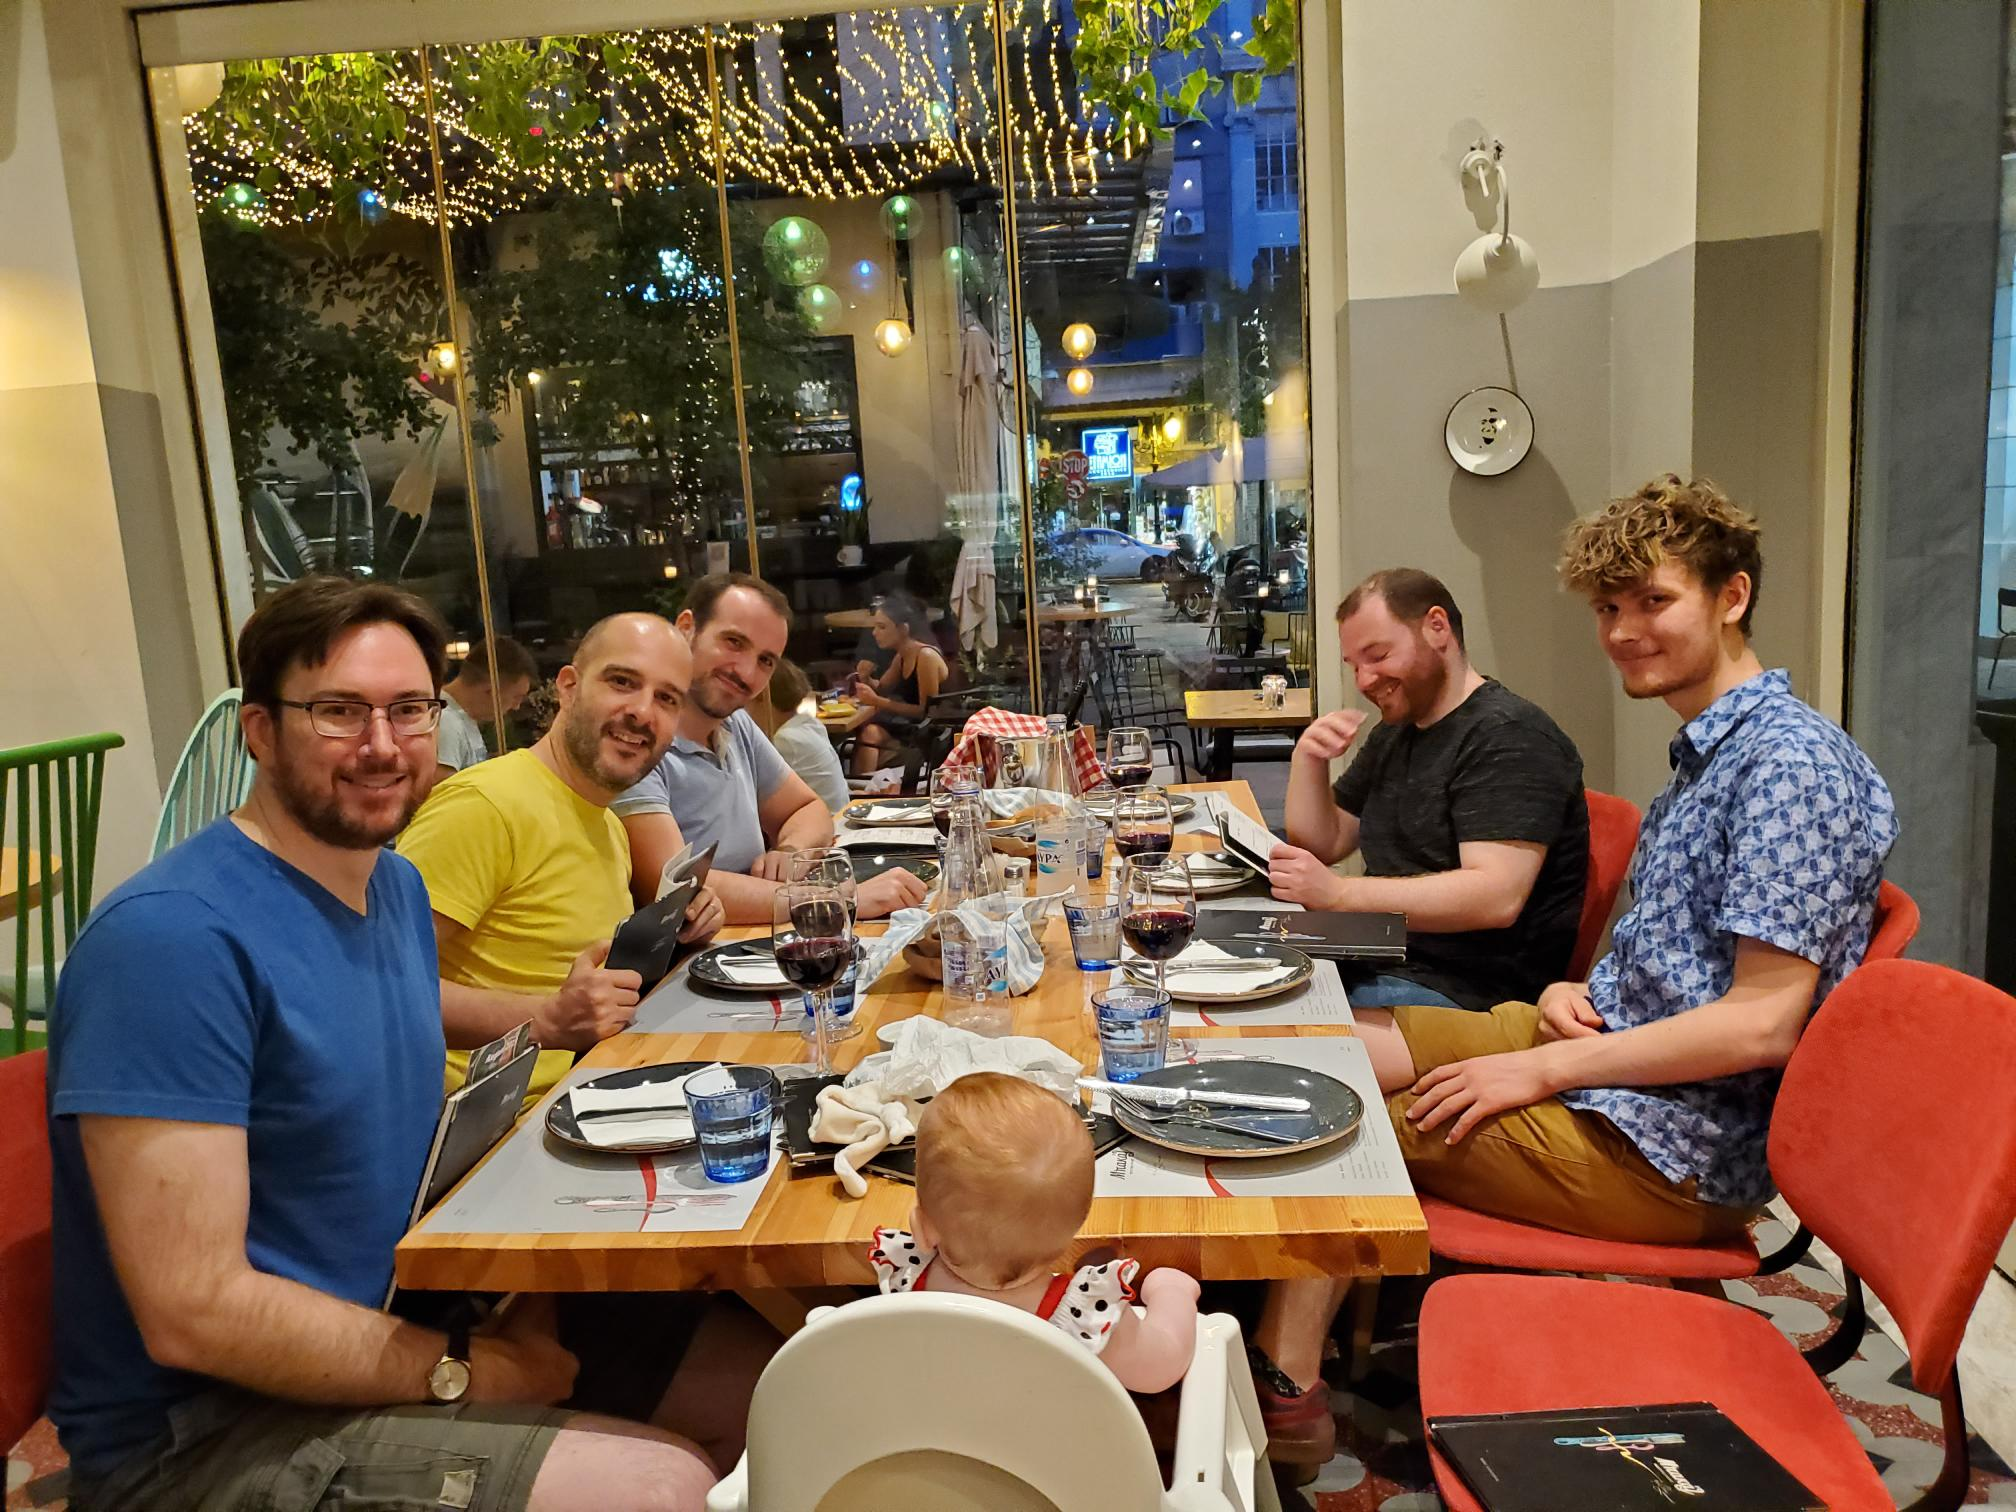 Purism team members sitting around a dinner table at a restaurant